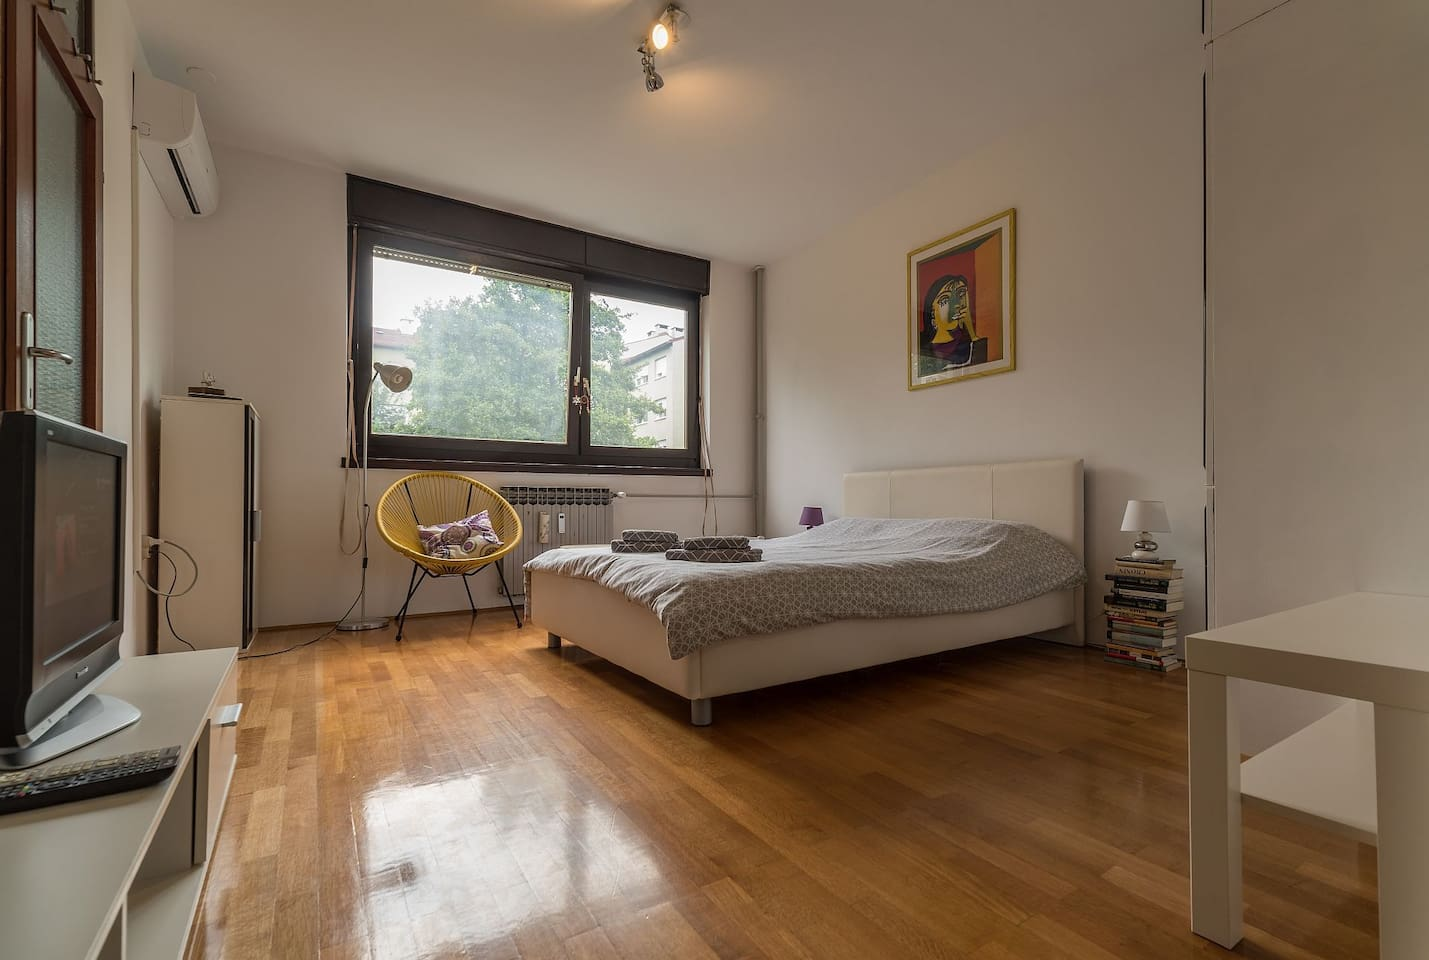 Big and spacious room with lot of light.